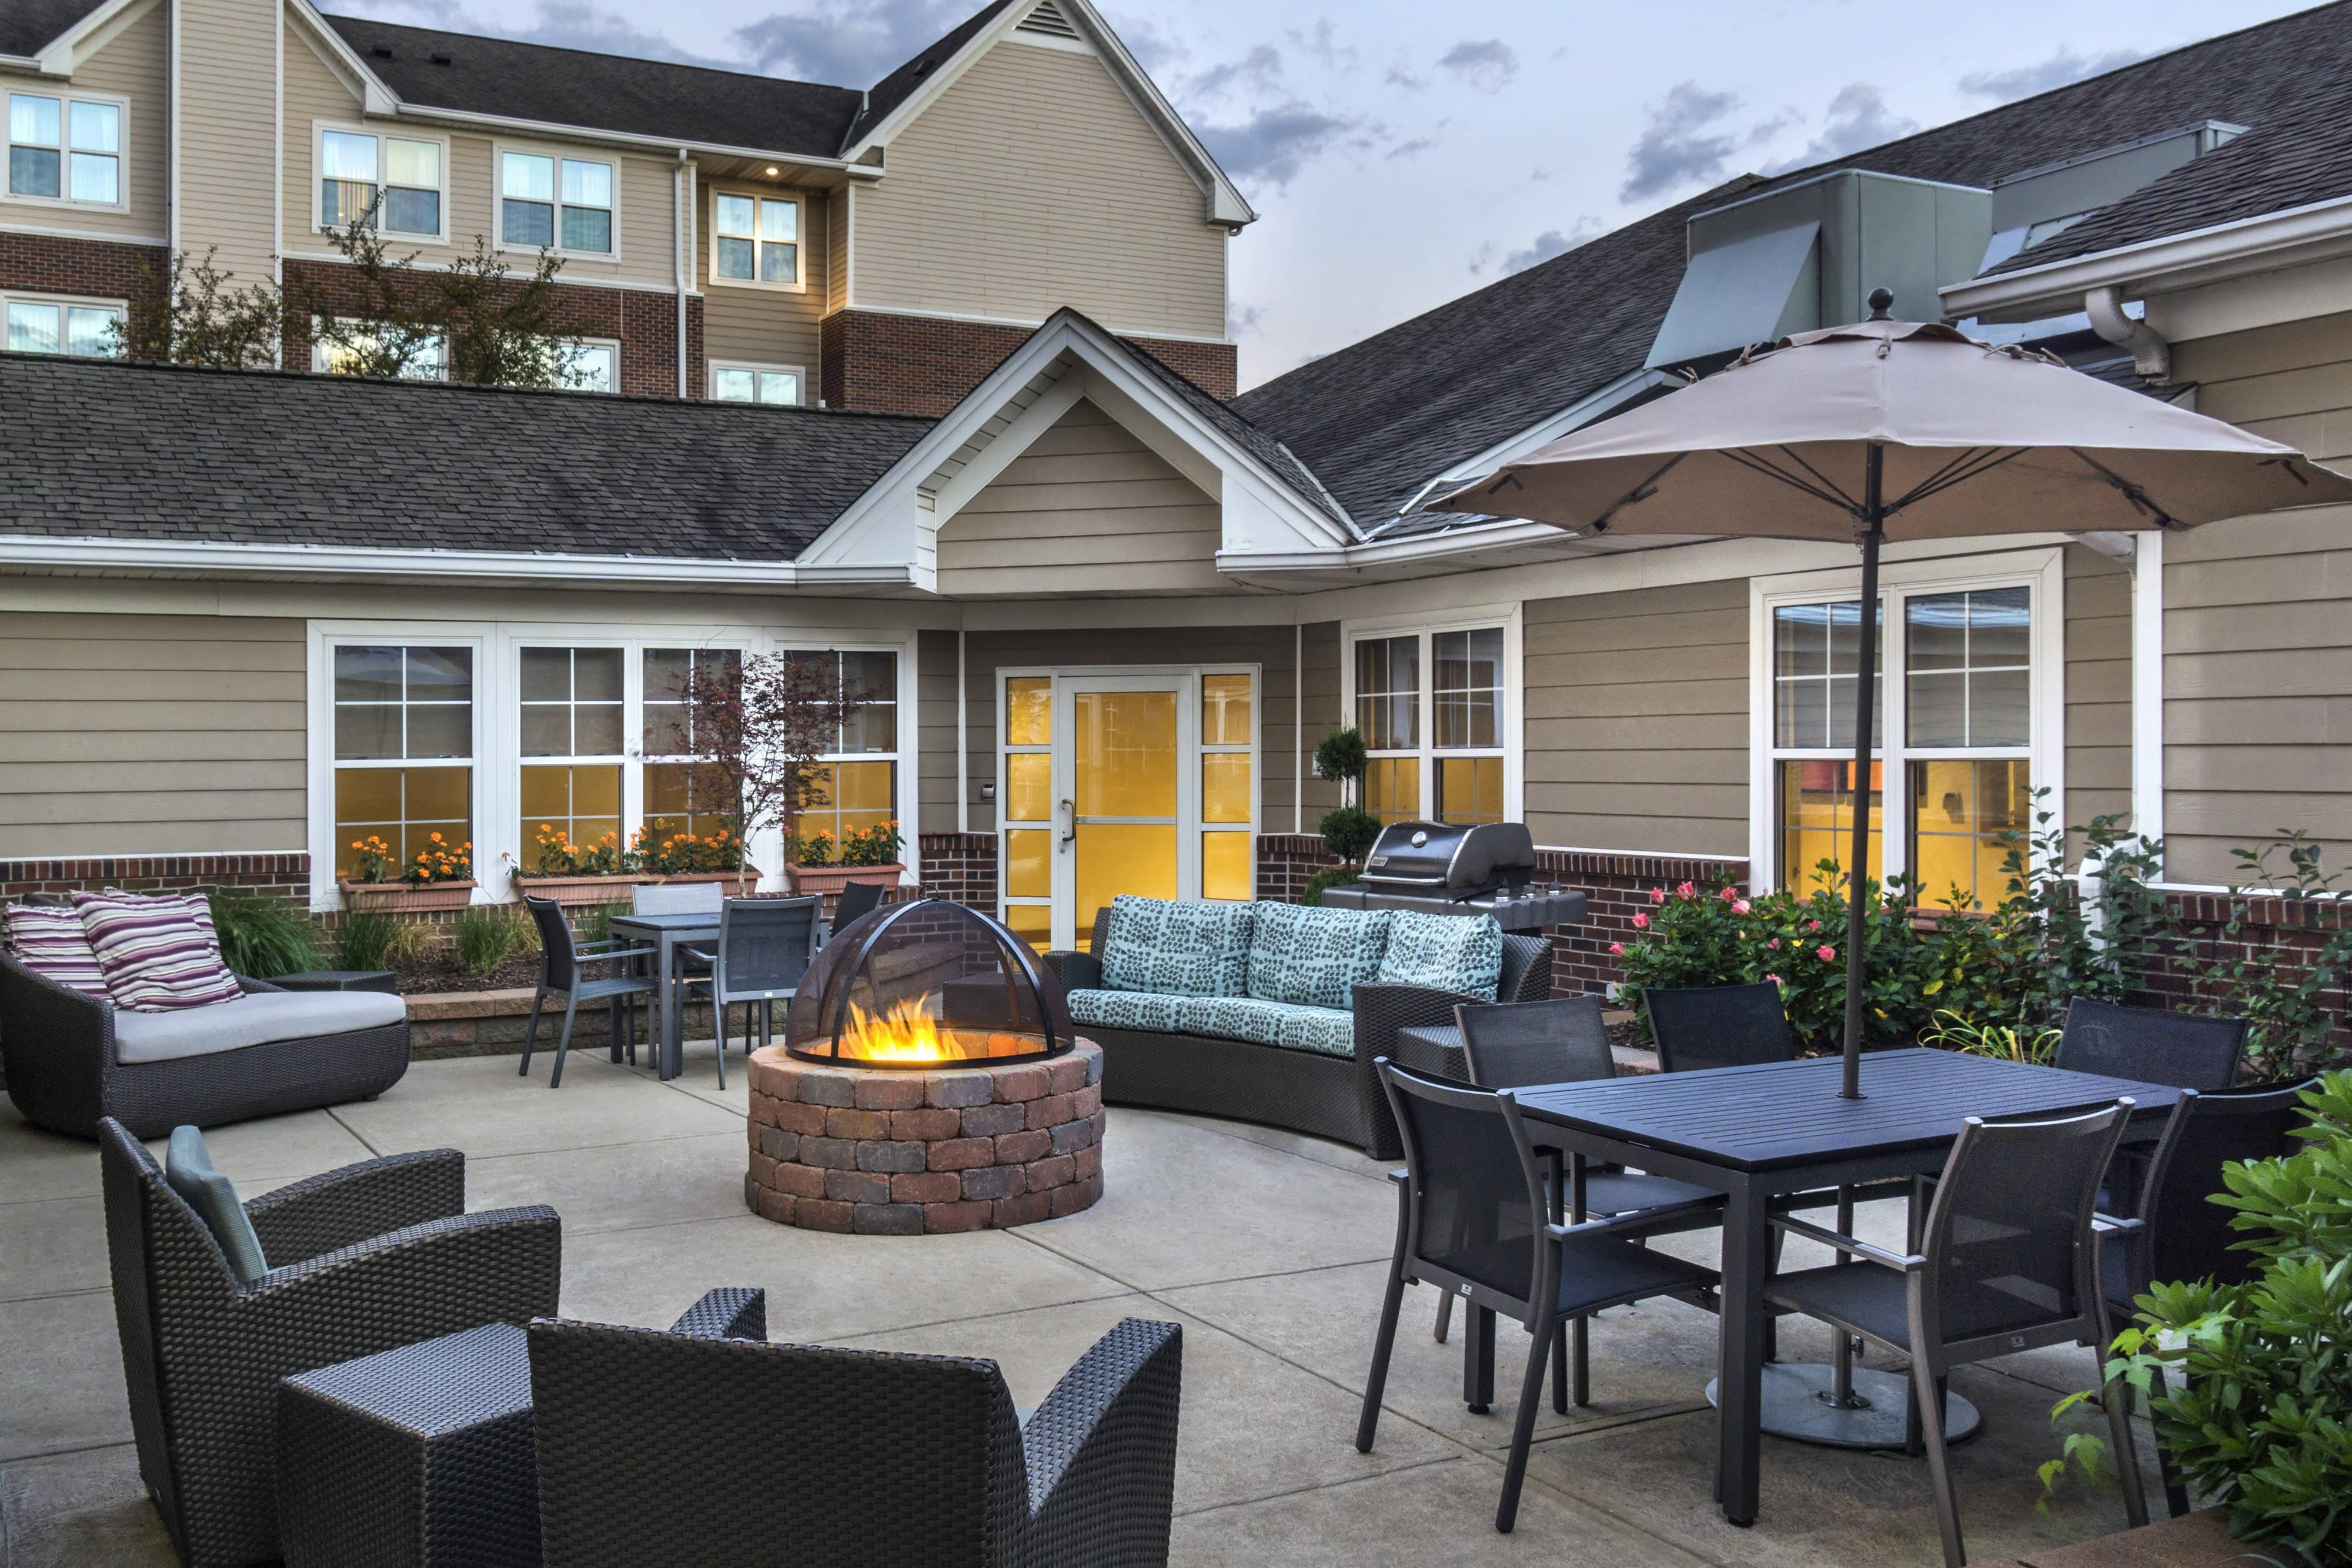 Outdoor Courtyard Patio & Fire Pit